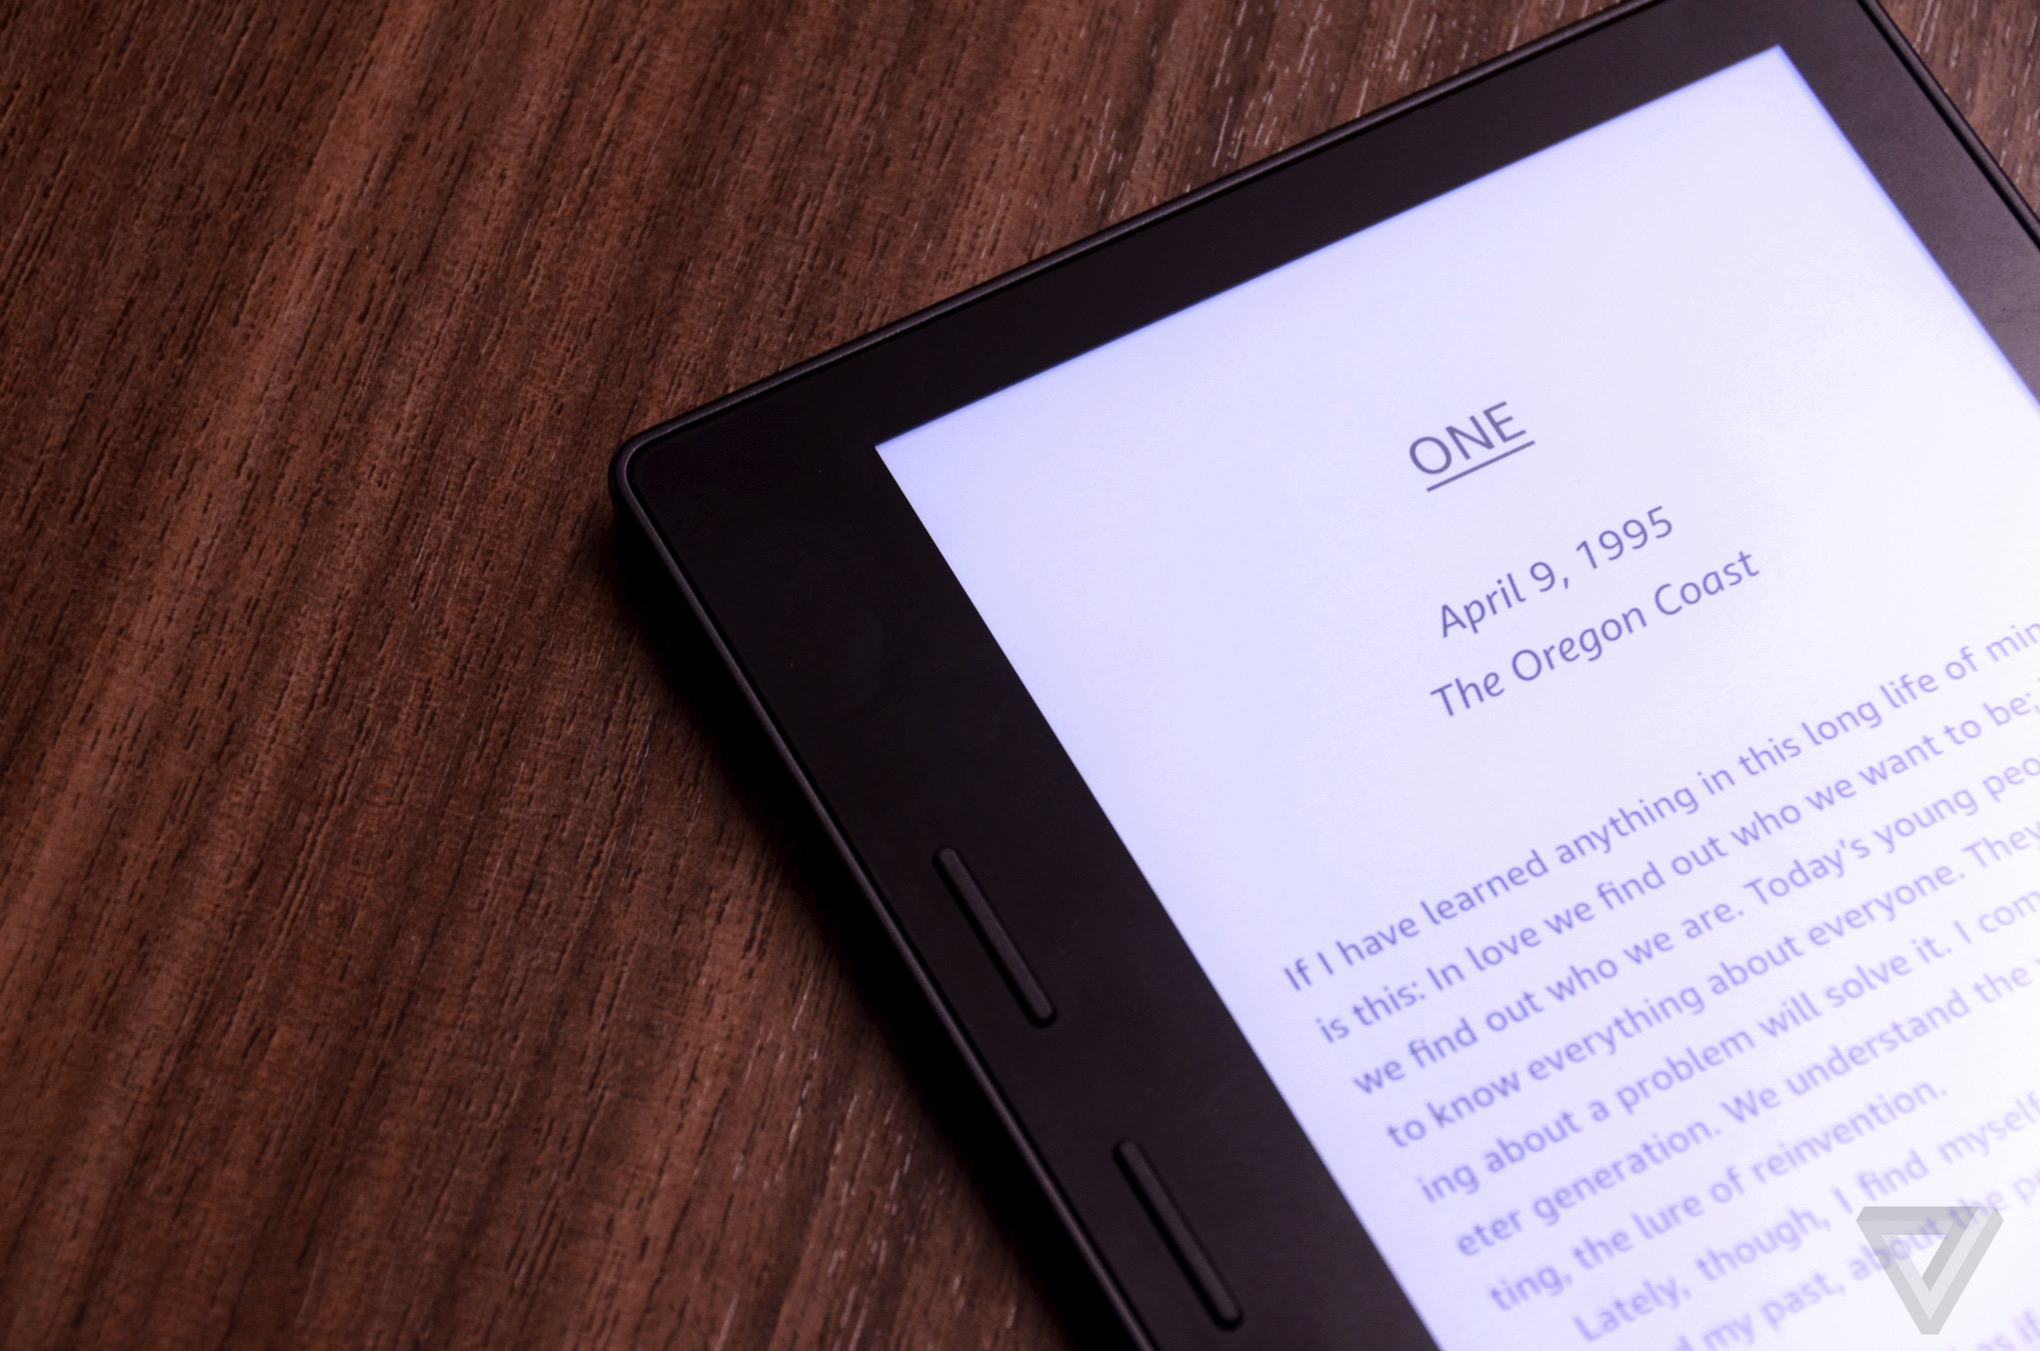 Amazon's Kindle Oasis is the funkiest e-reader it's ever made - The